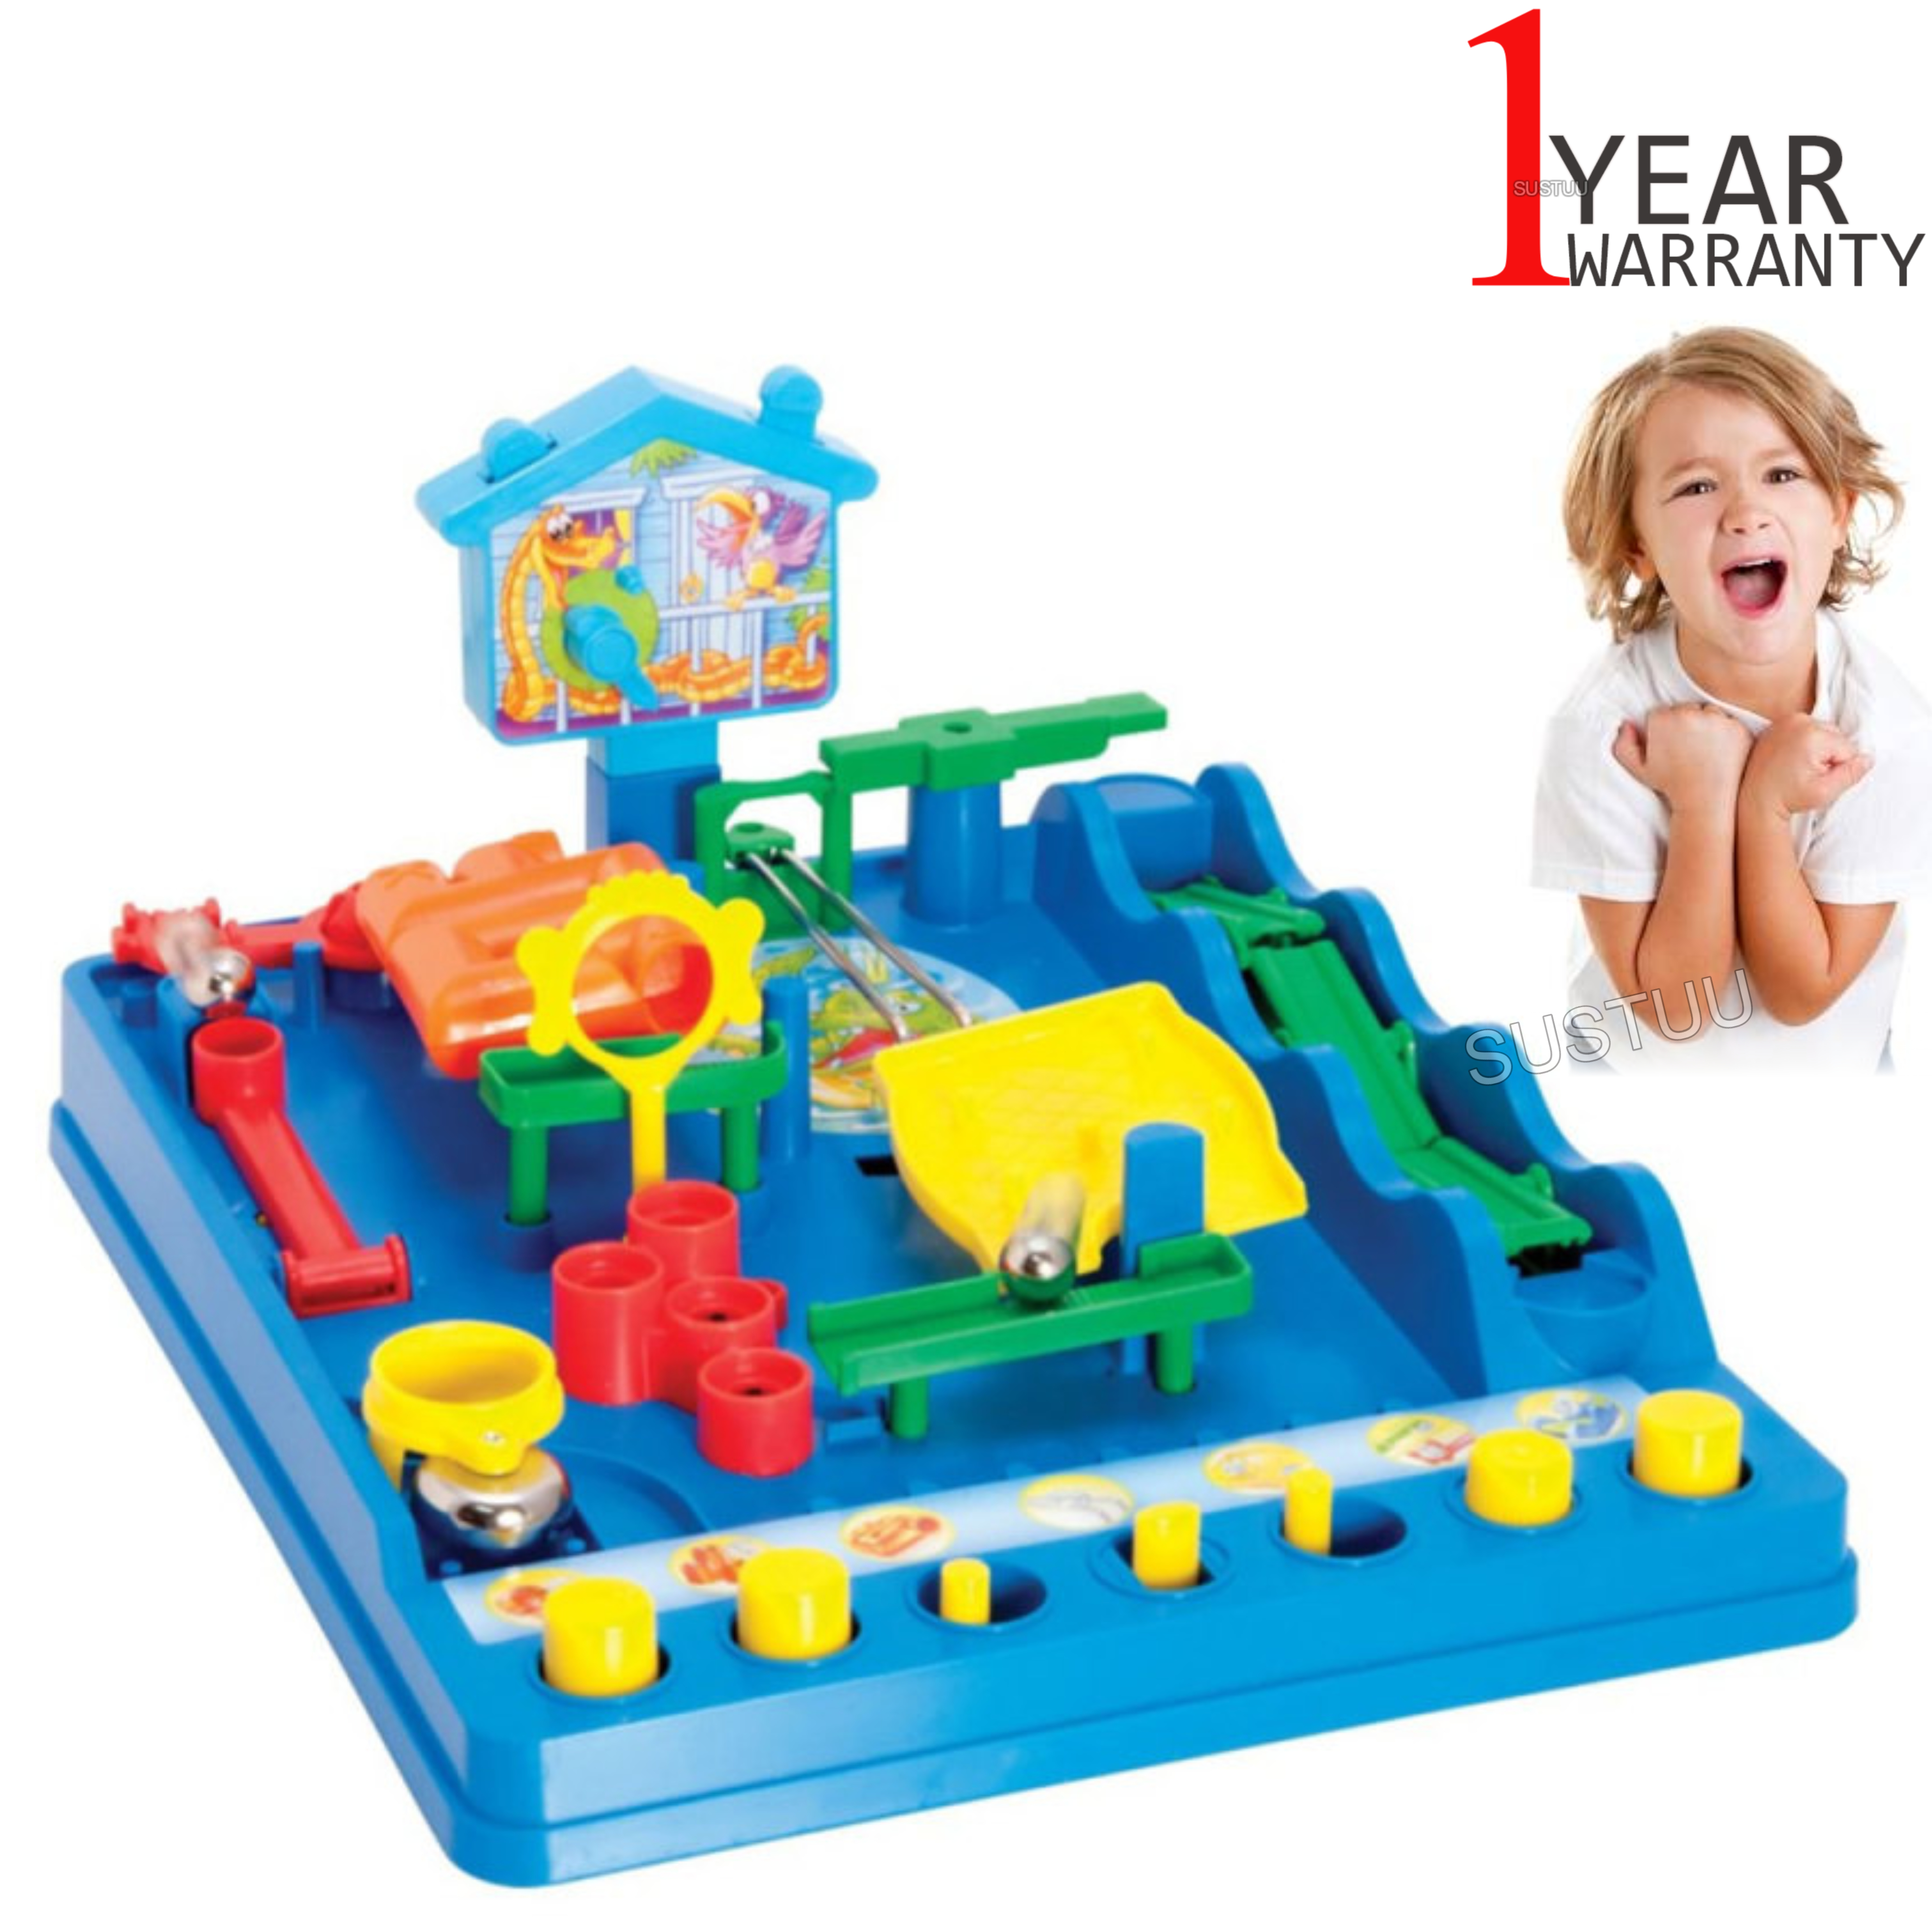 Tomy T7070 Scewball Marble Scramble Game | Classic Children's Fun Actvity | Age 5+